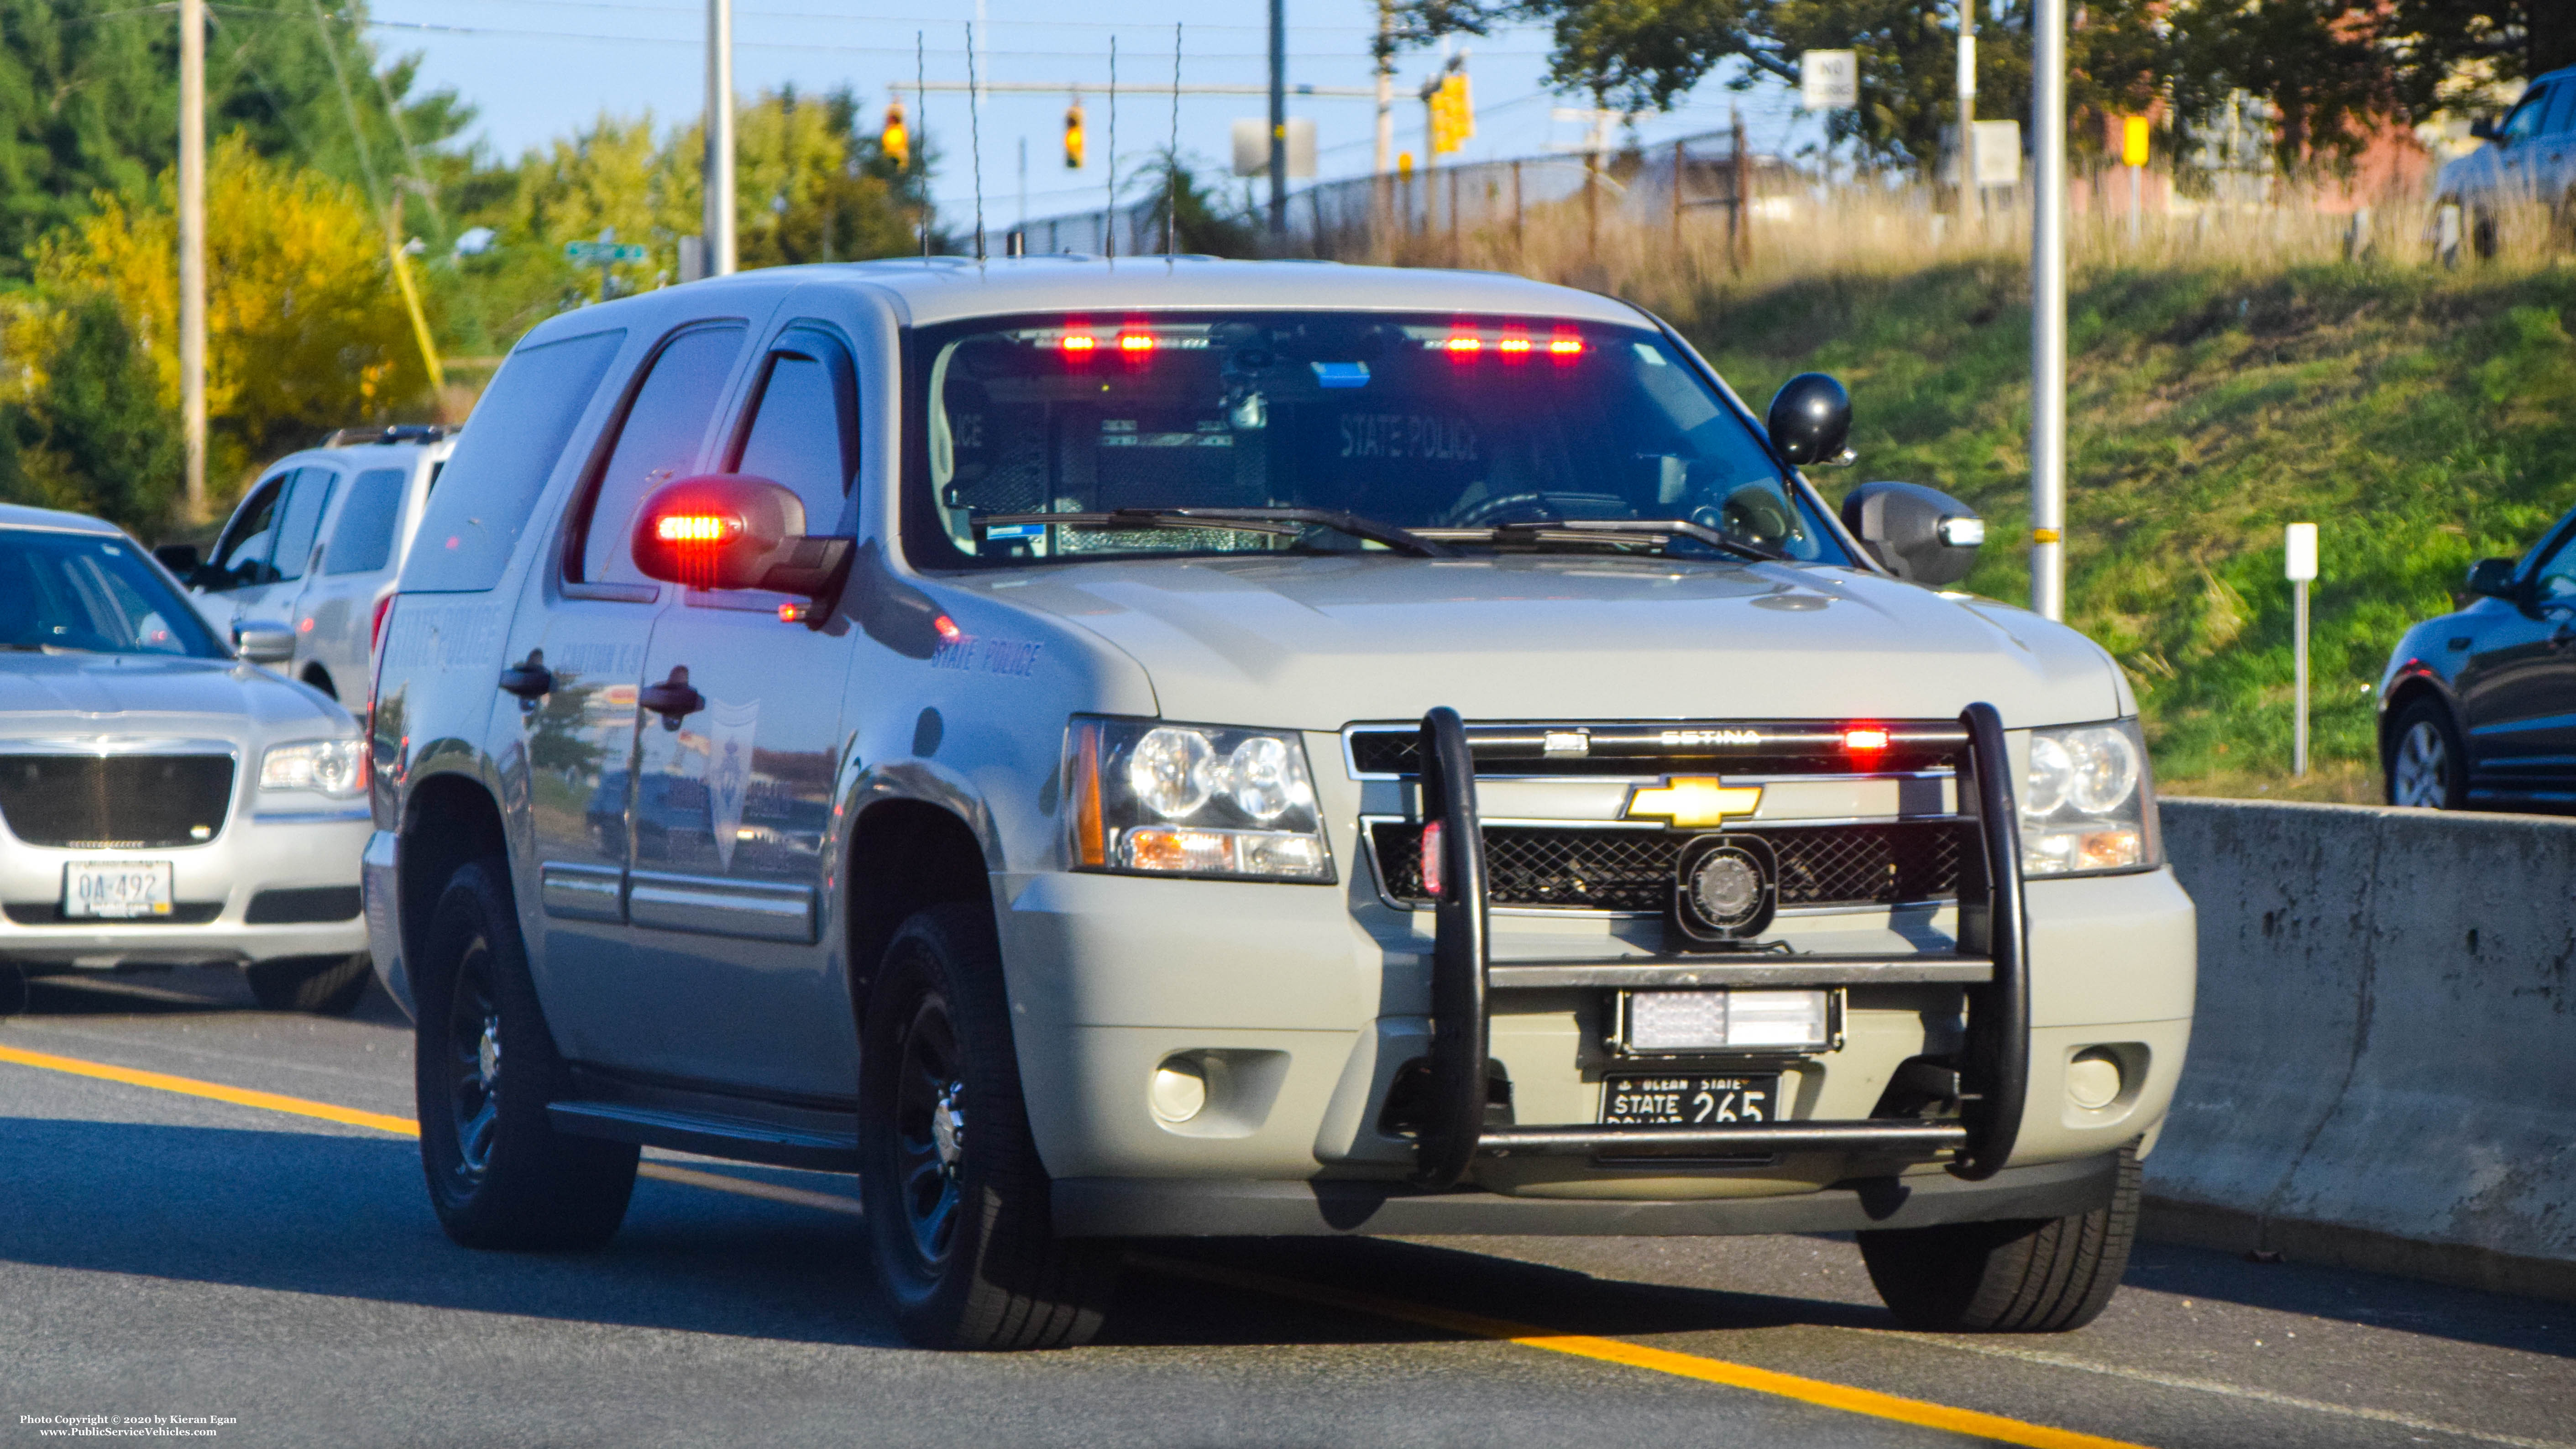 A photo  of Rhode Island State Police             Cruiser 265, a 2013 Chevrolet Tahoe             taken by Kieran Egan